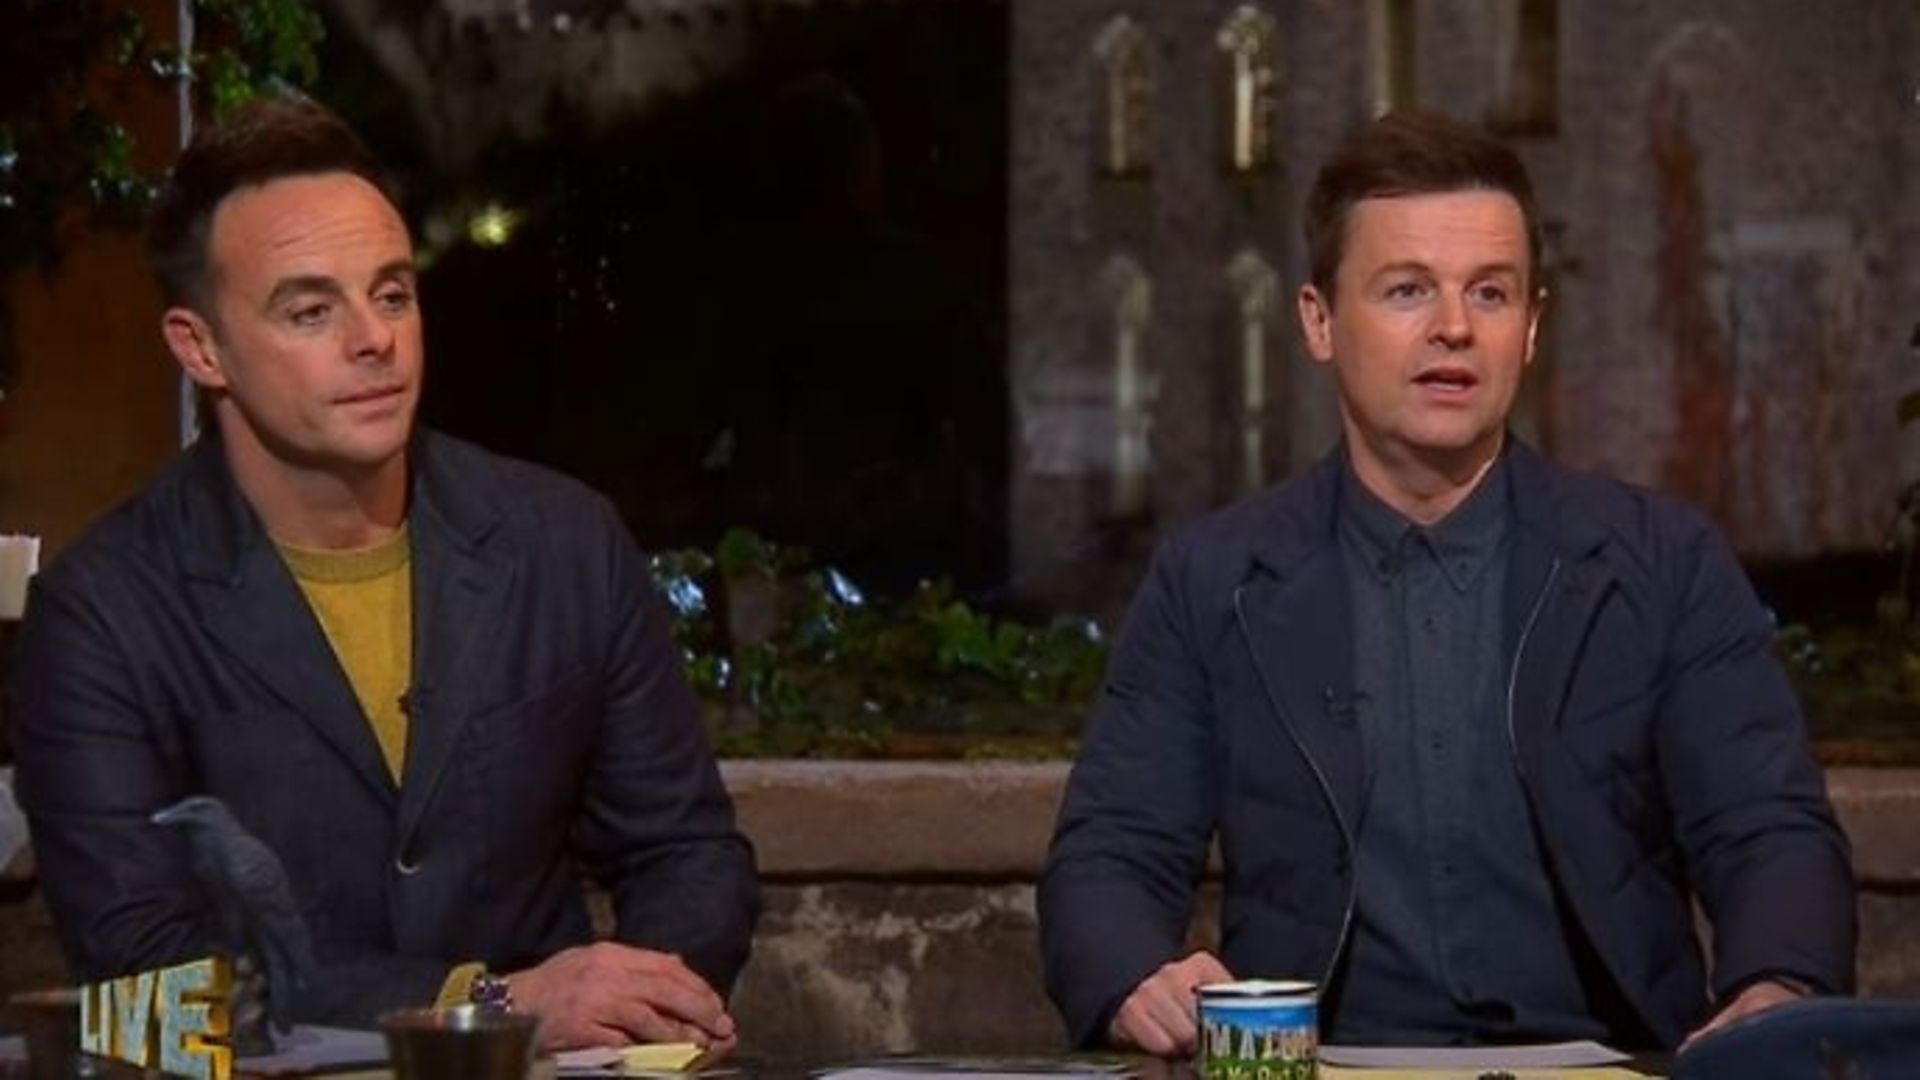 I'm A Celebrity co-hosts Anthony McPartlin and Declan Donnelly - Credit: YouTube, I'm A Celebrity... Get Me Out Of Here!